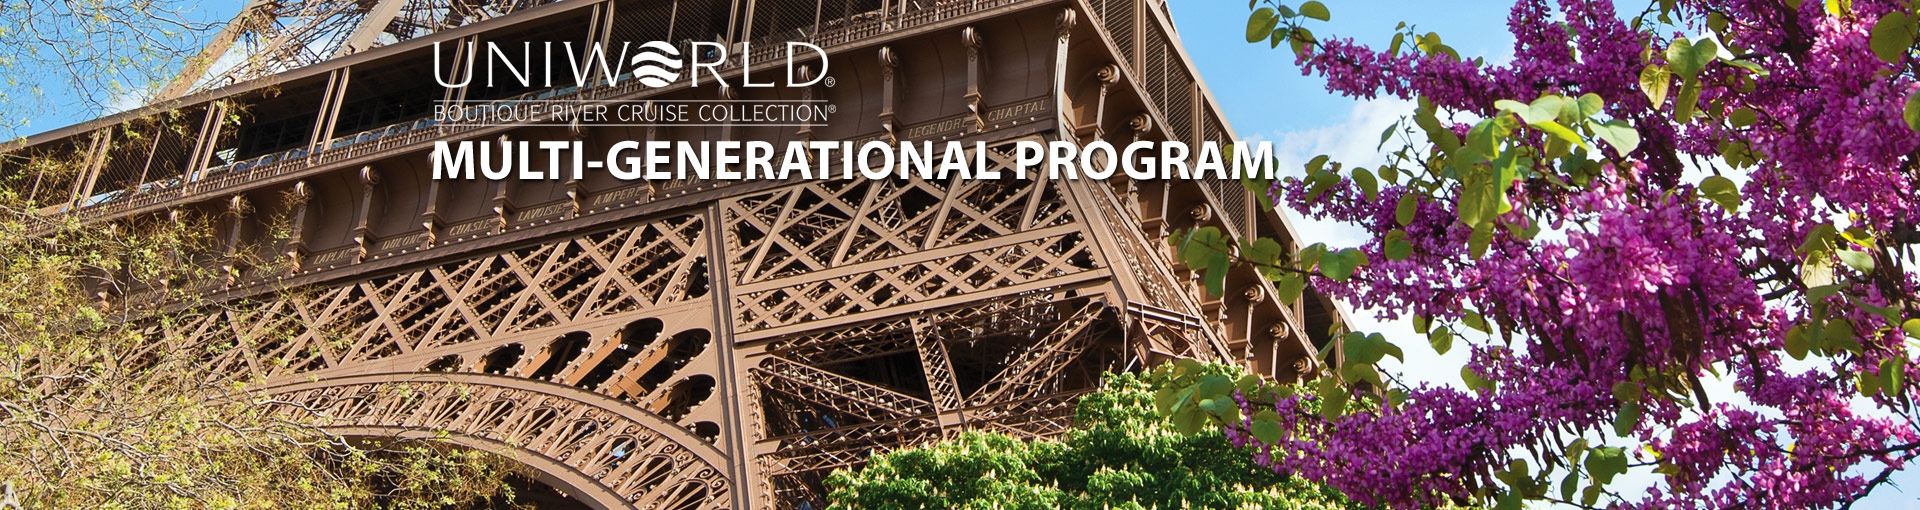 Uniworld River Cruises Family Programs